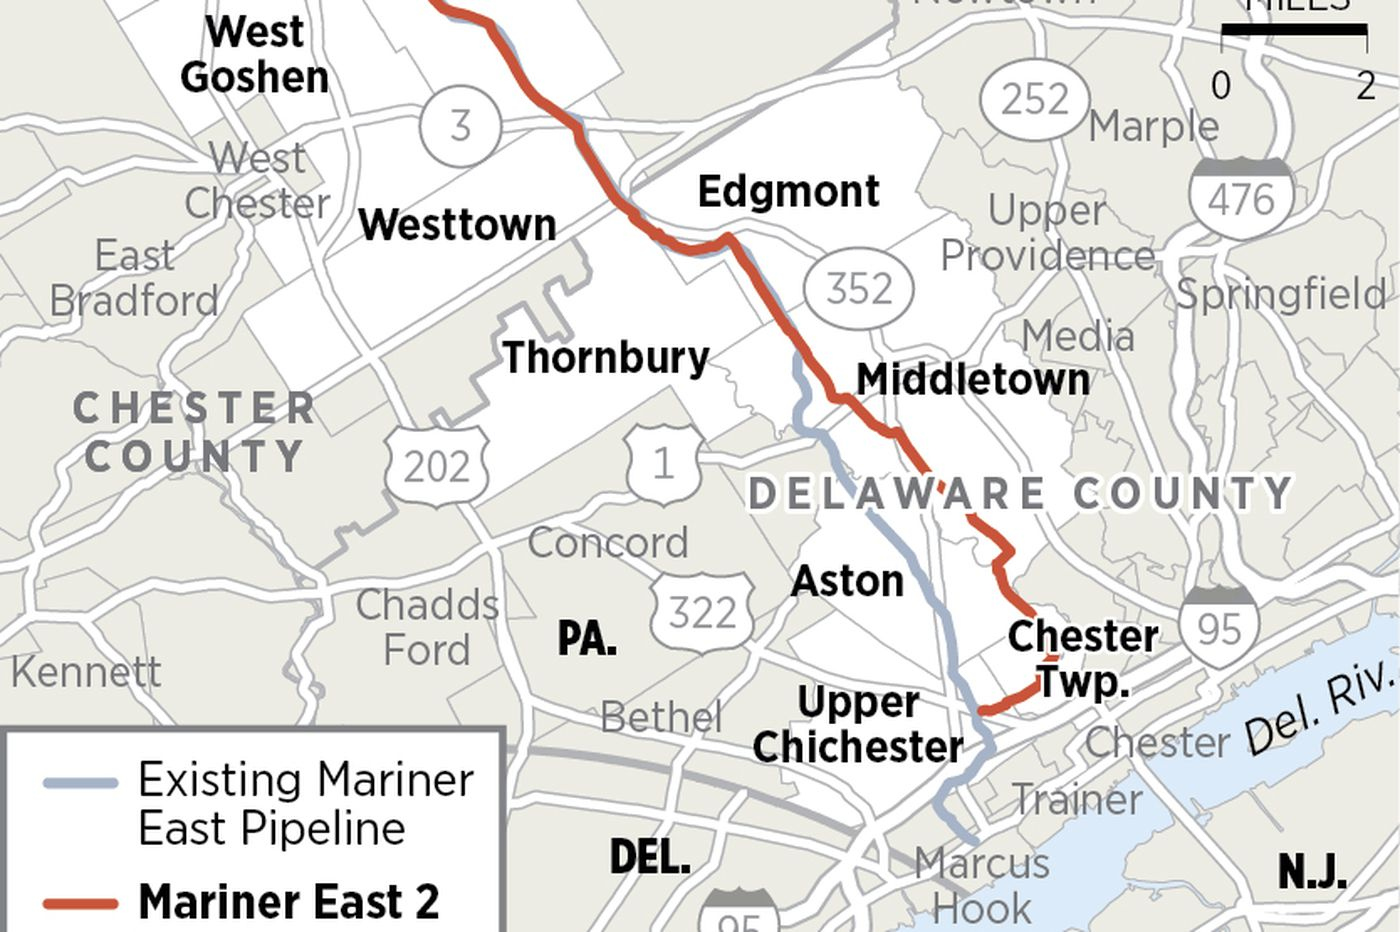 Mariner East pipeline target of possible Chester County Commission on